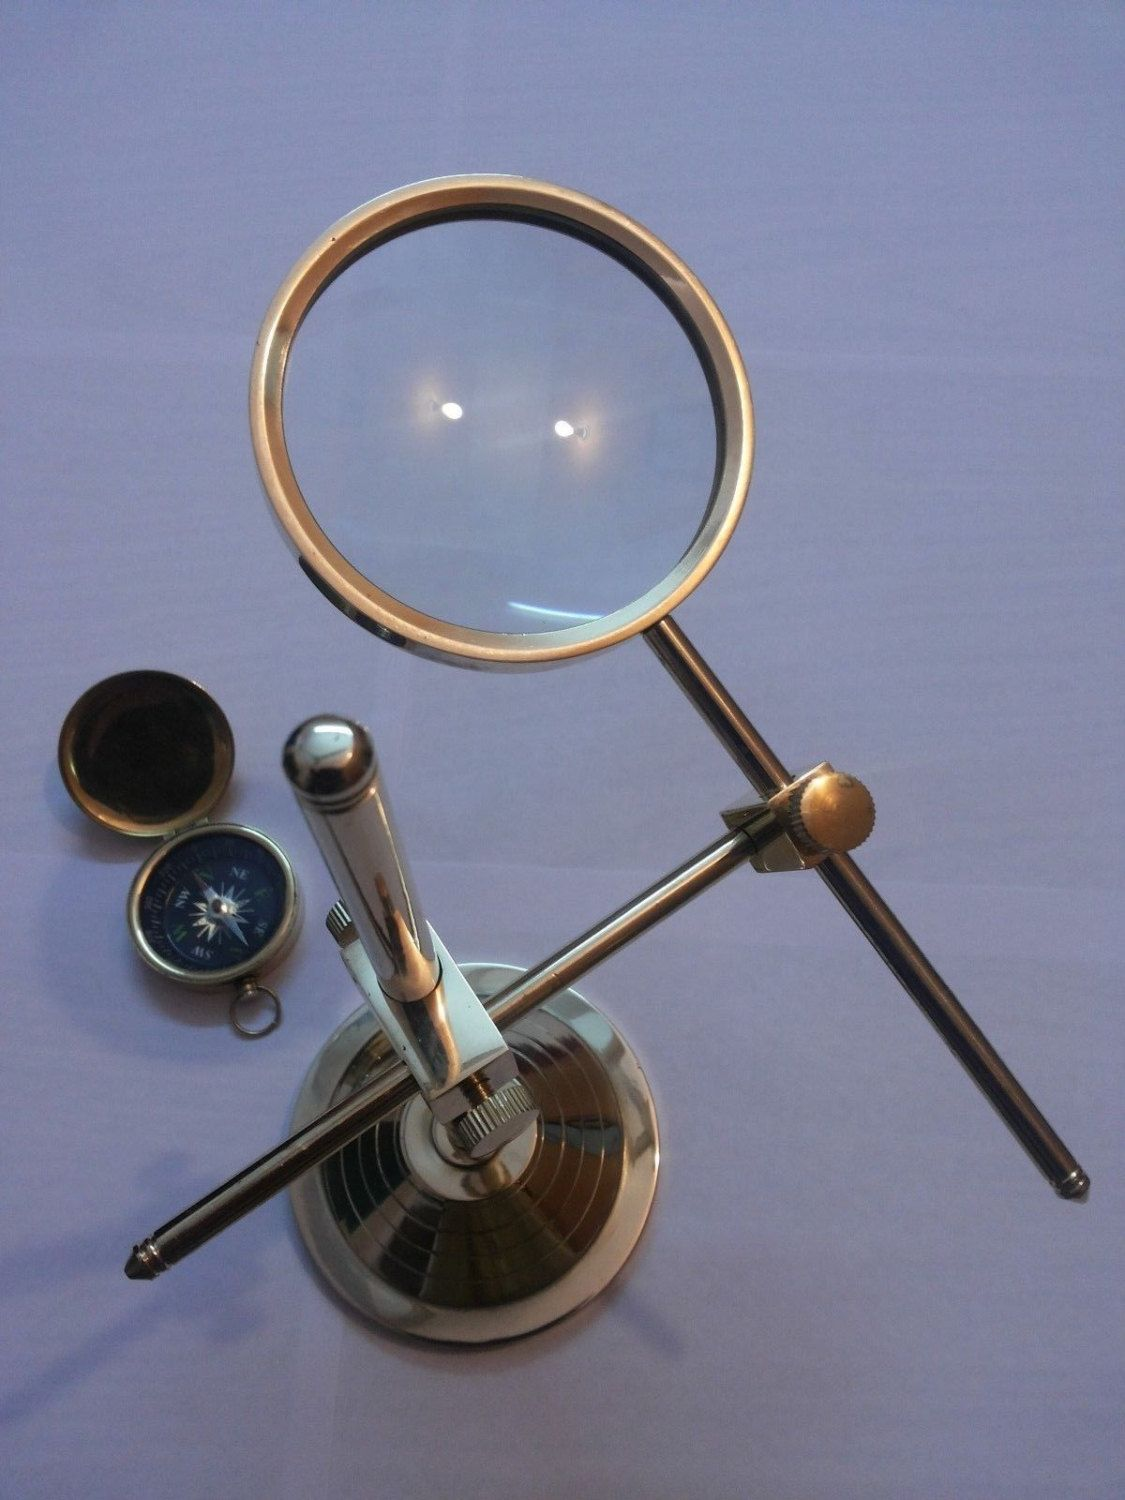 Magnifying Glass Surveying Brass Table Top Map Reader Magnifier Antique Compass By Collectionsbyjas On Etsy Glass Collection Magnifying Glass Table Top Decor